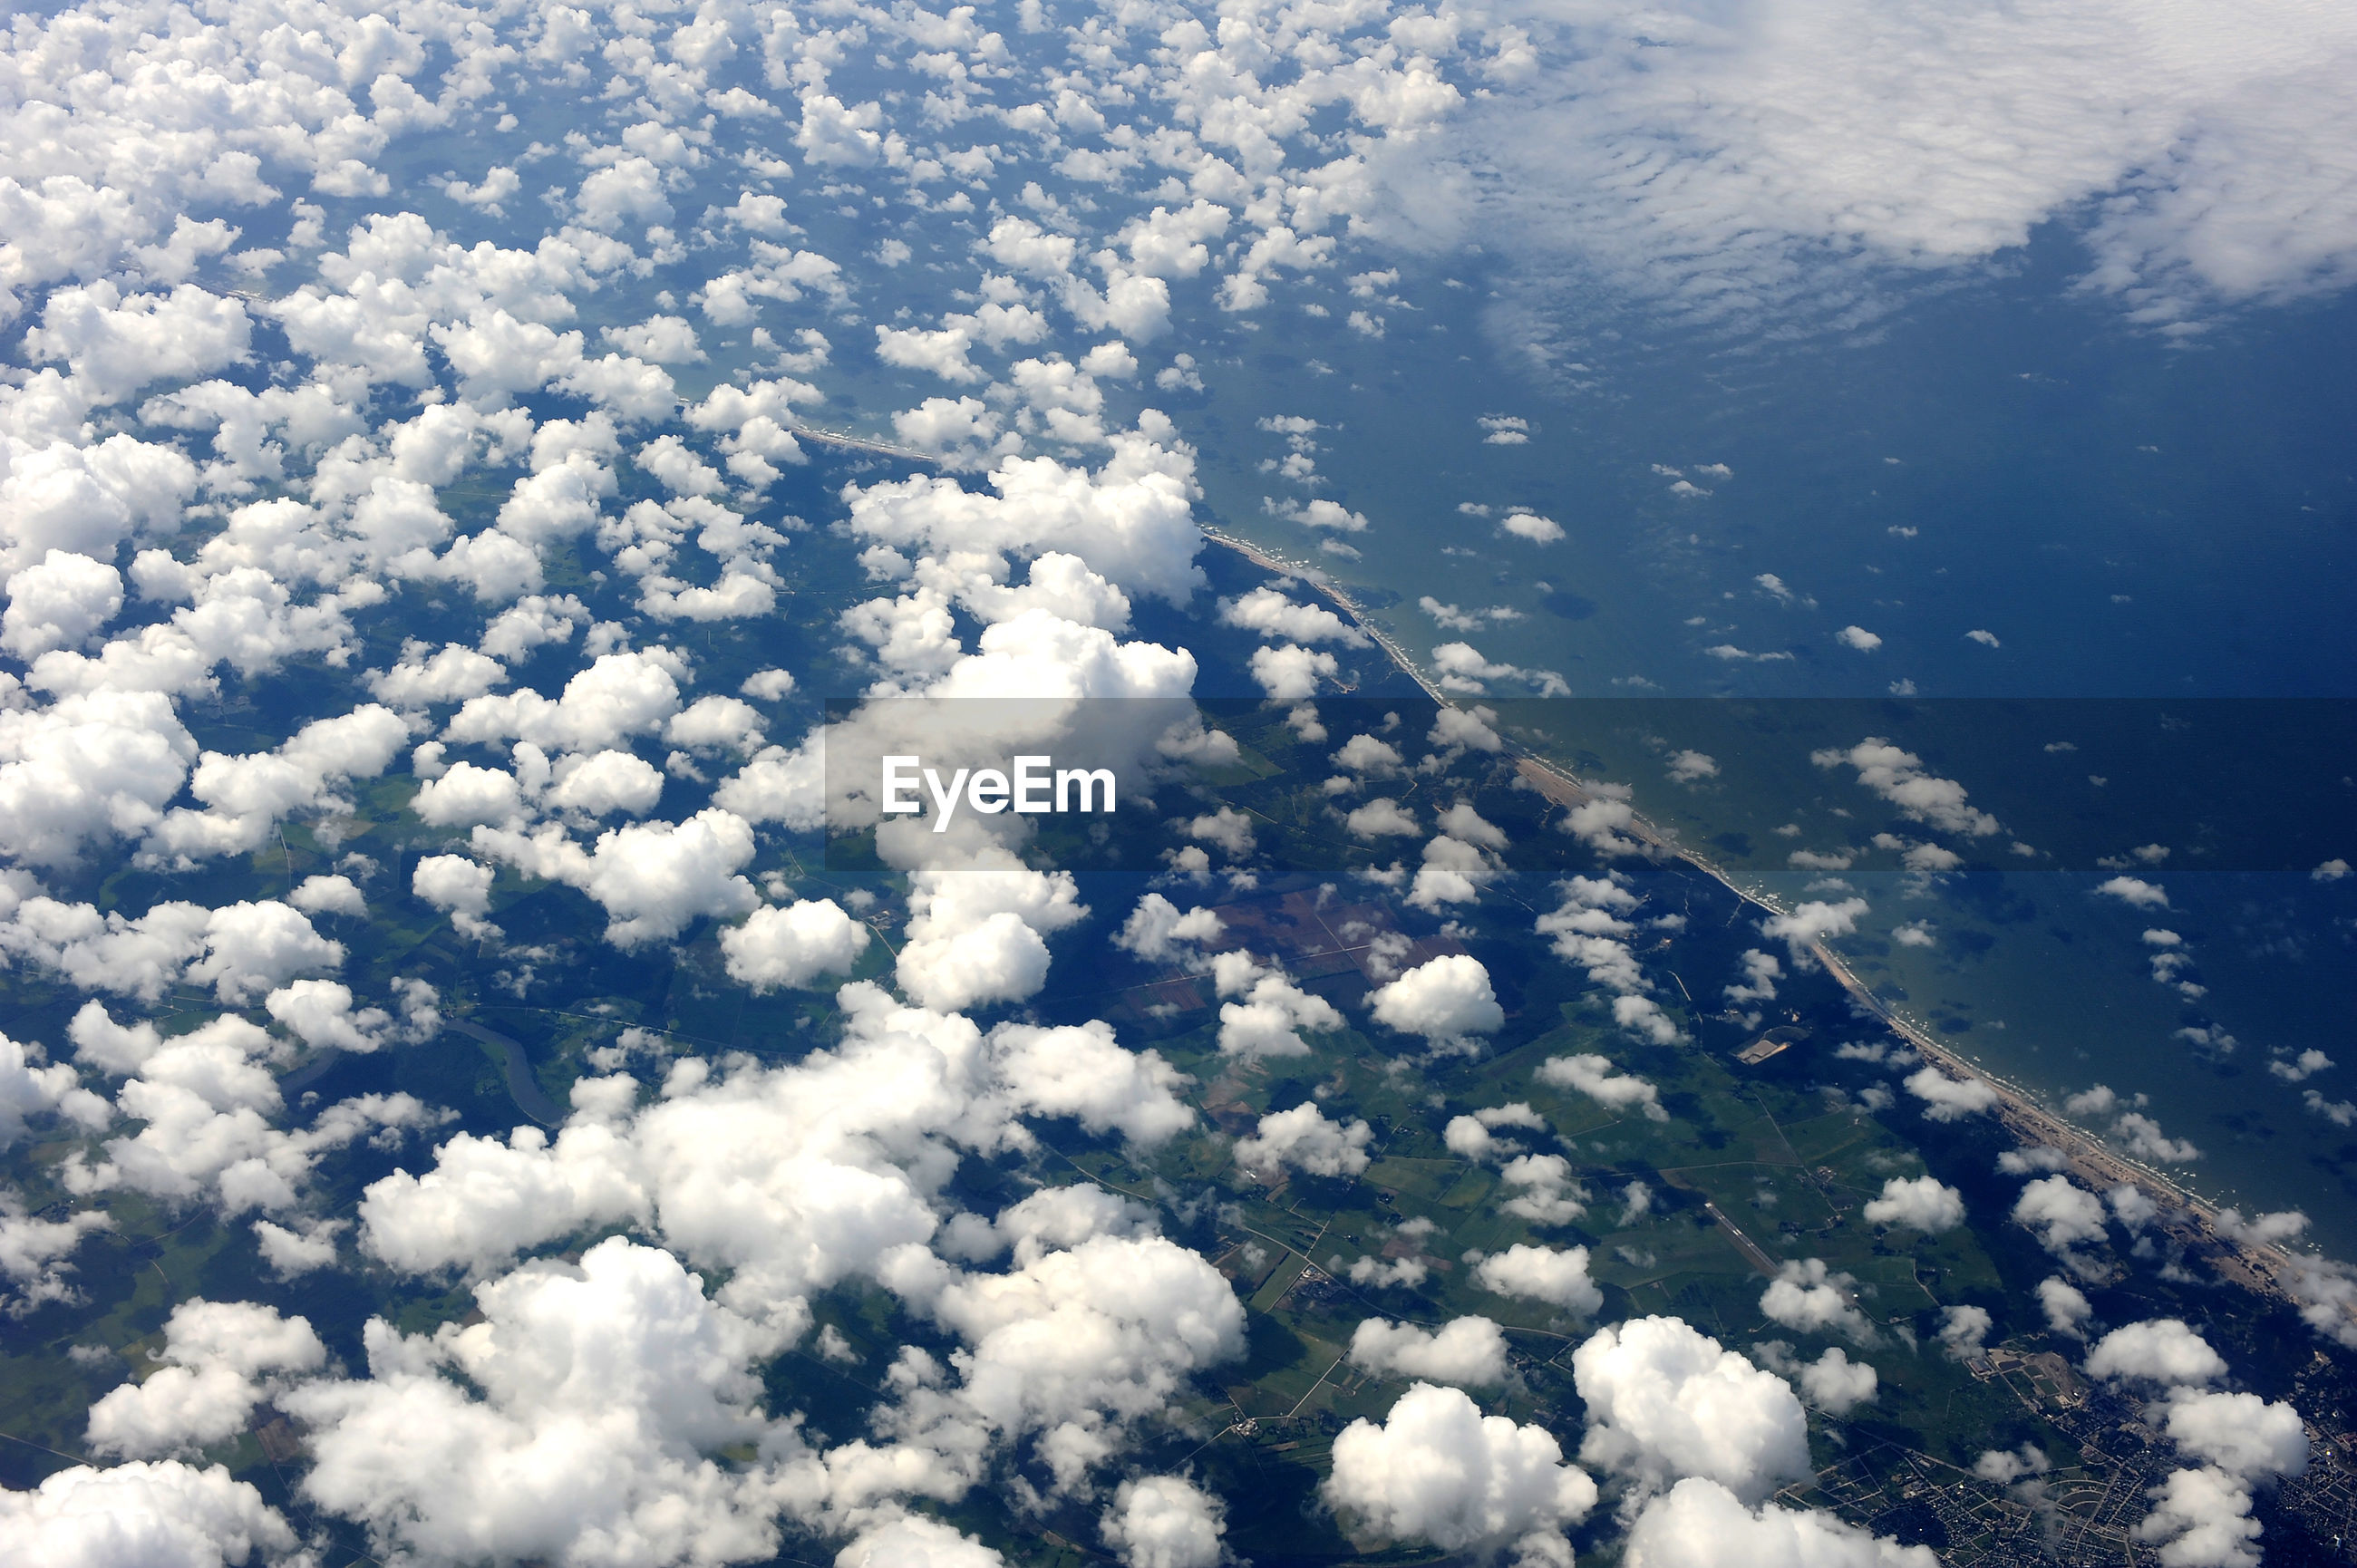 HIGH ANGLE VIEW OF CLOUDSCAPE OVER CLOUDS